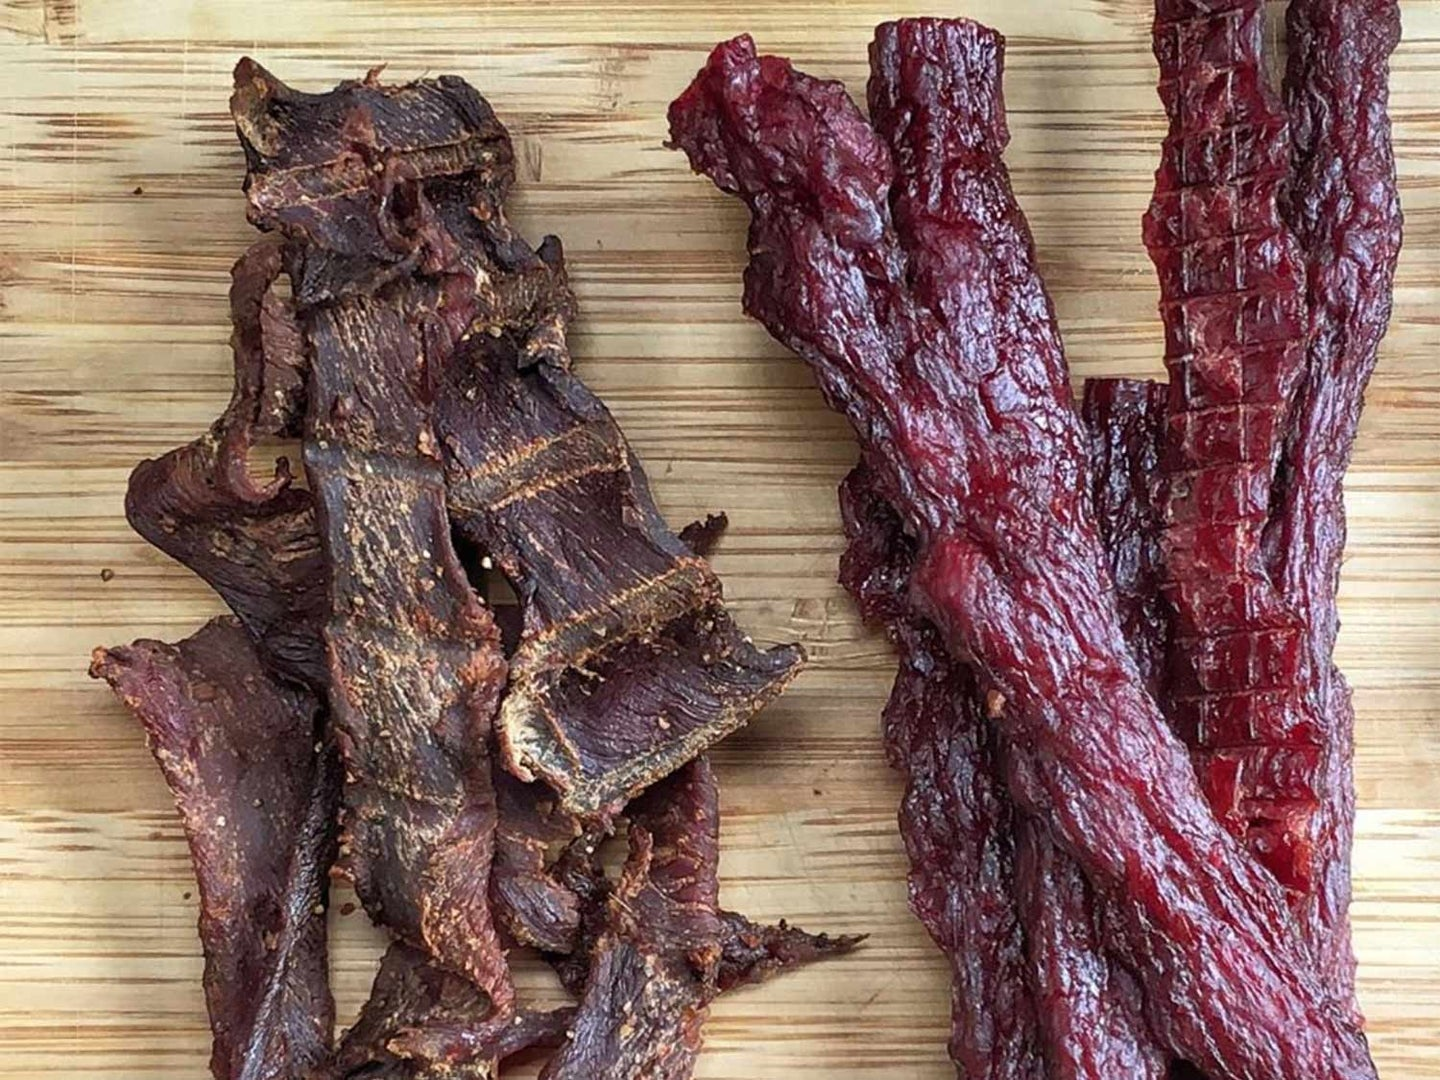 Two types of beef jerky on a cutting board.